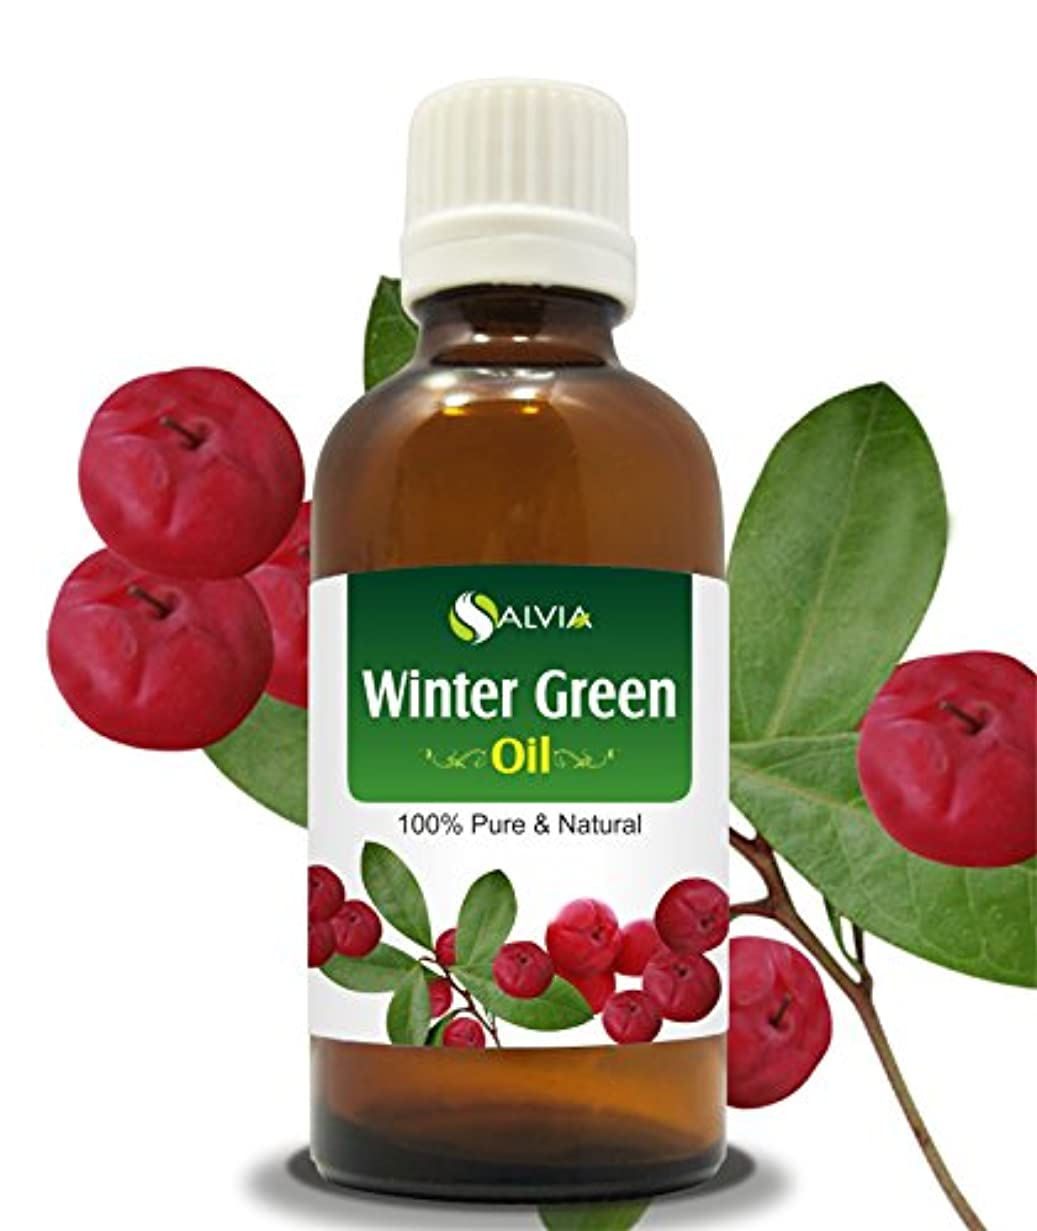 ズボン有限免疫するWINTER GREEN OIL 100% NATURAL PURE UNDILUTED UNCUT ESSENTIAL OIL 30ML